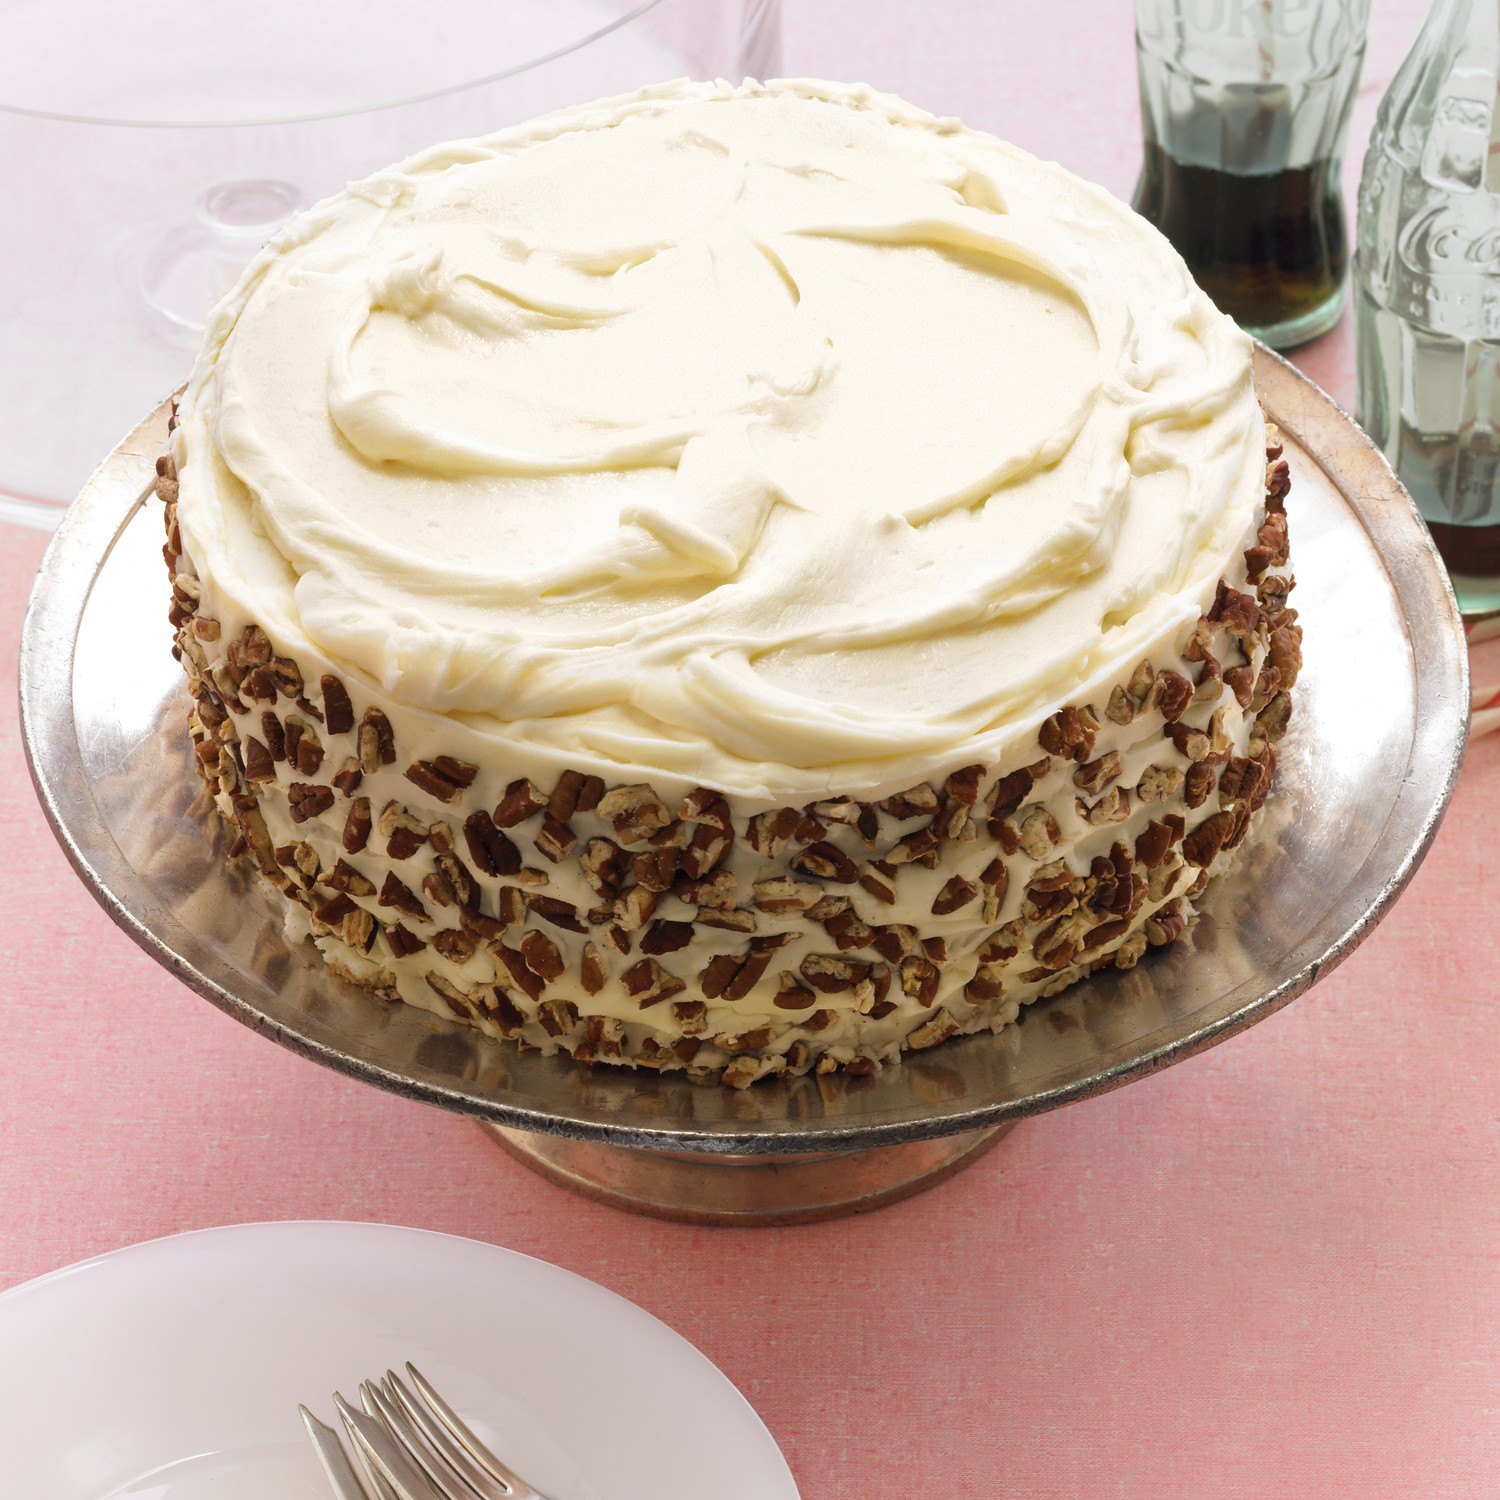 Easy Cream Cheese Frosting For Carrot Cake